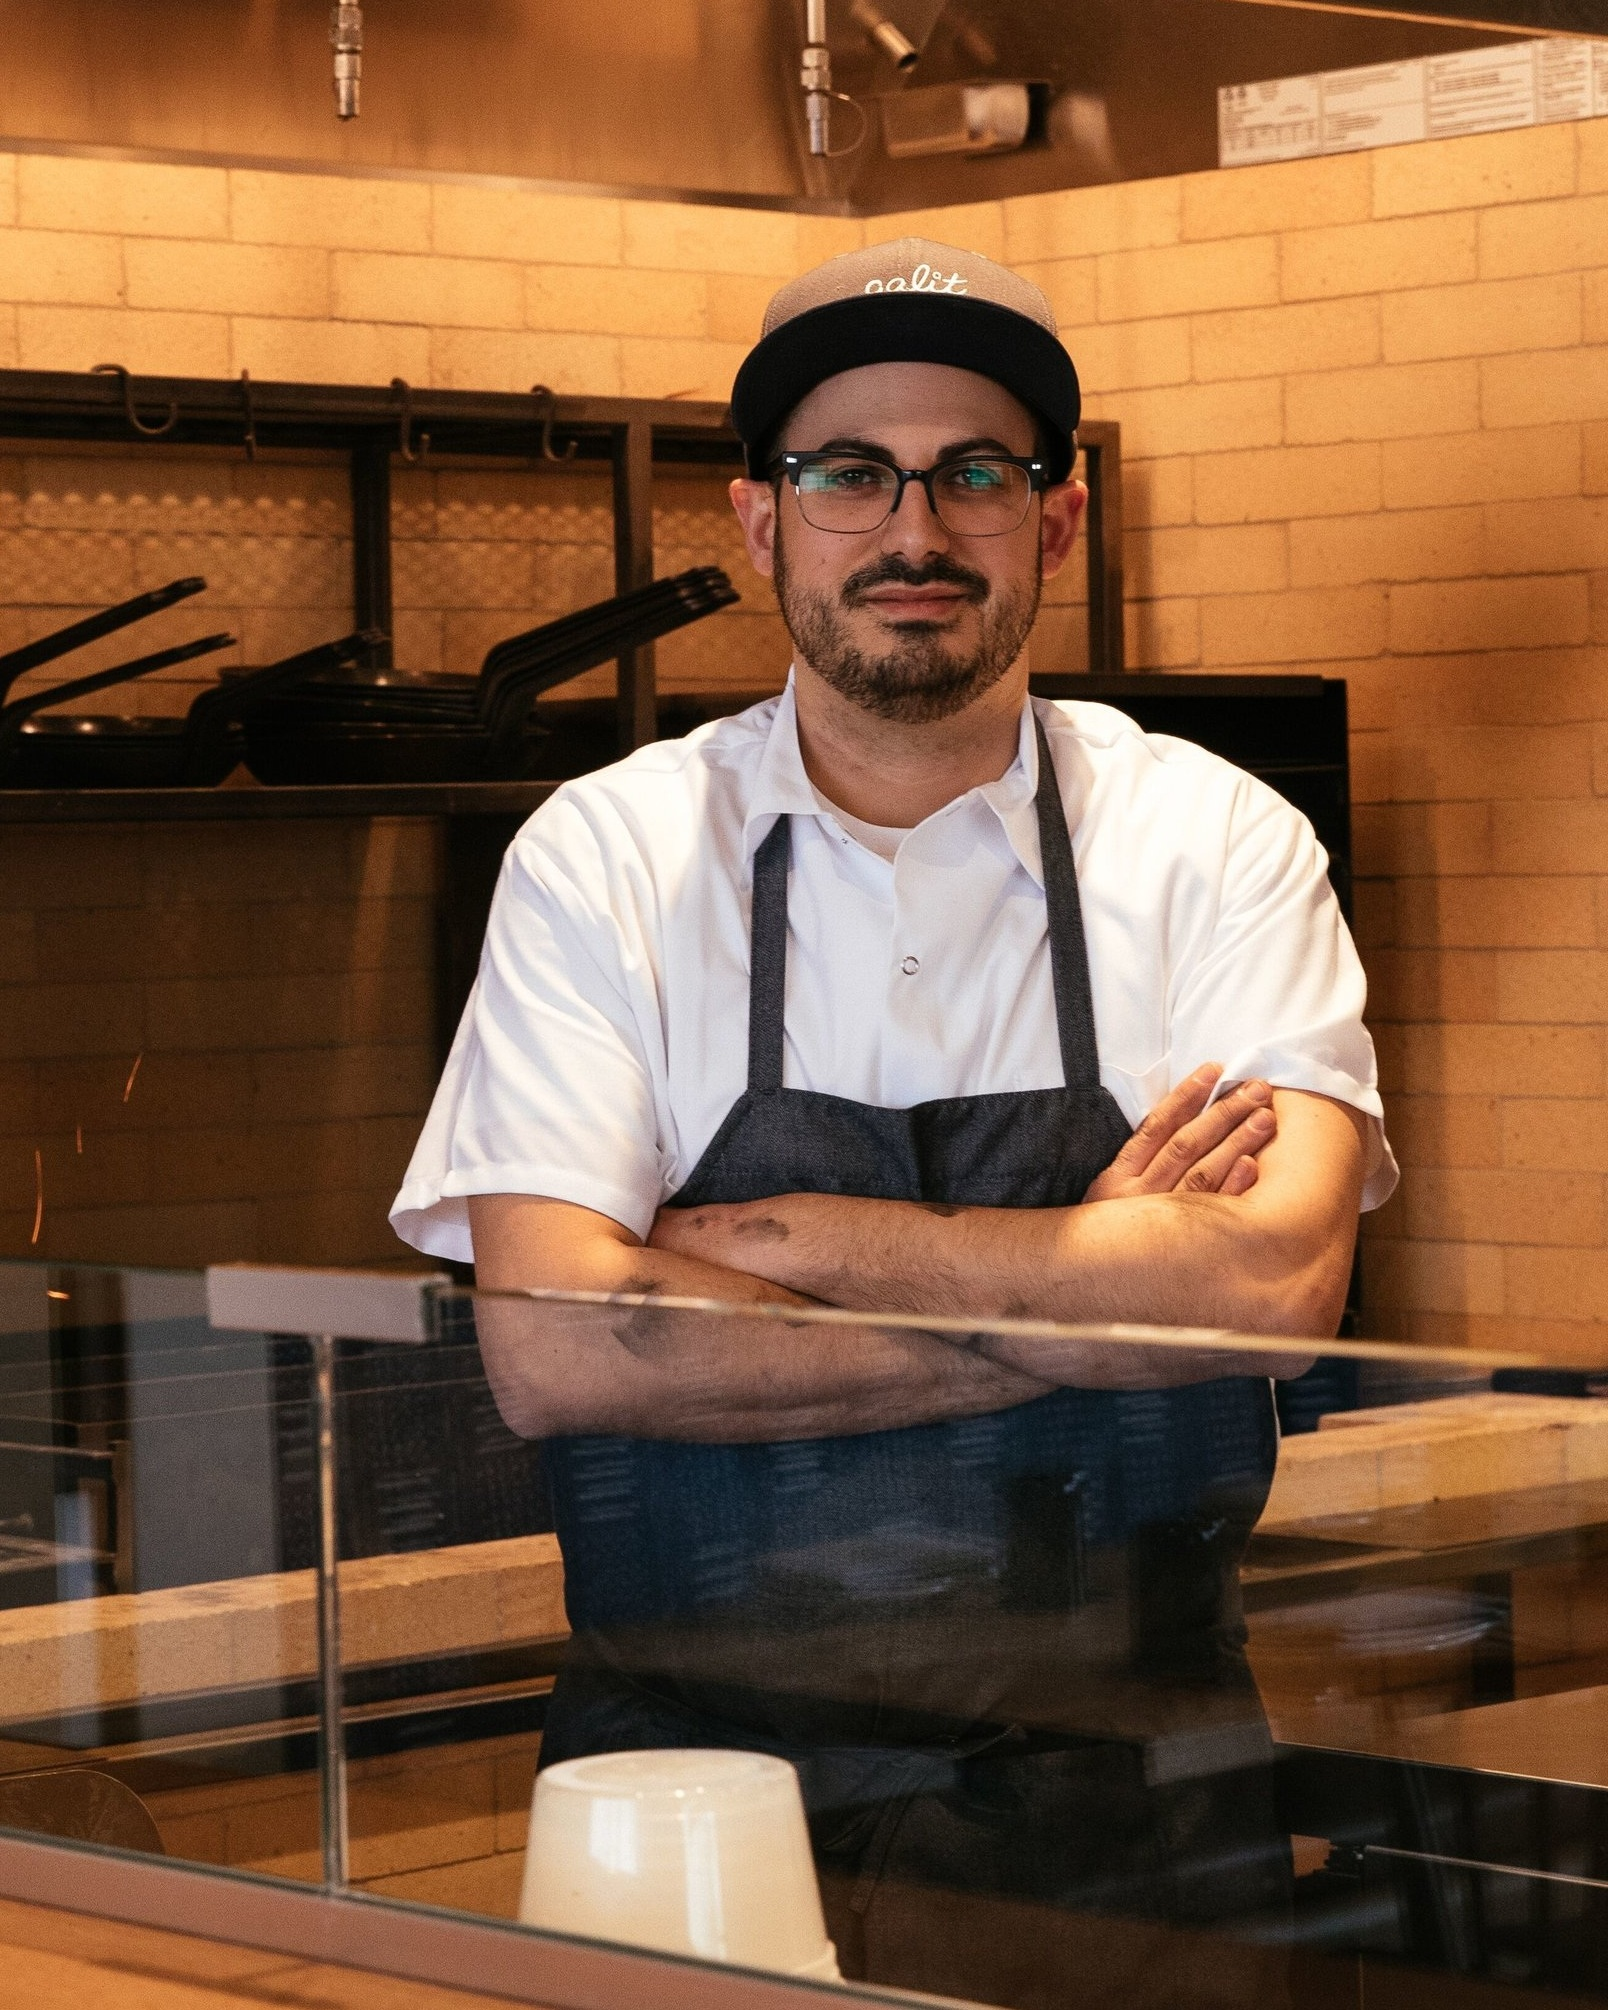 Zachary Engel - Executive Chef + Partner